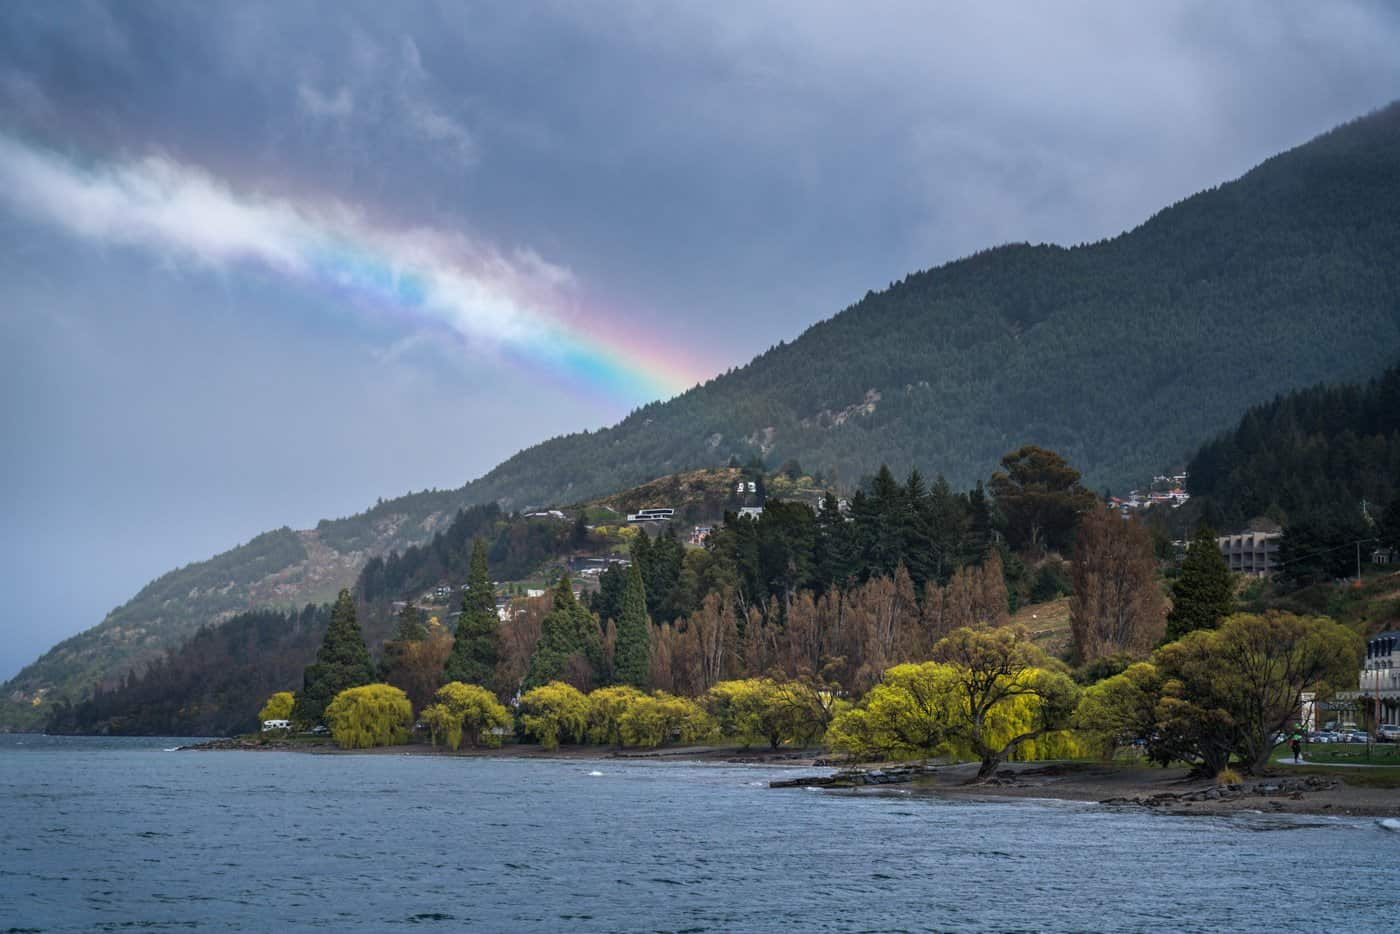 A rainbow on the road ahead to Queenstown.